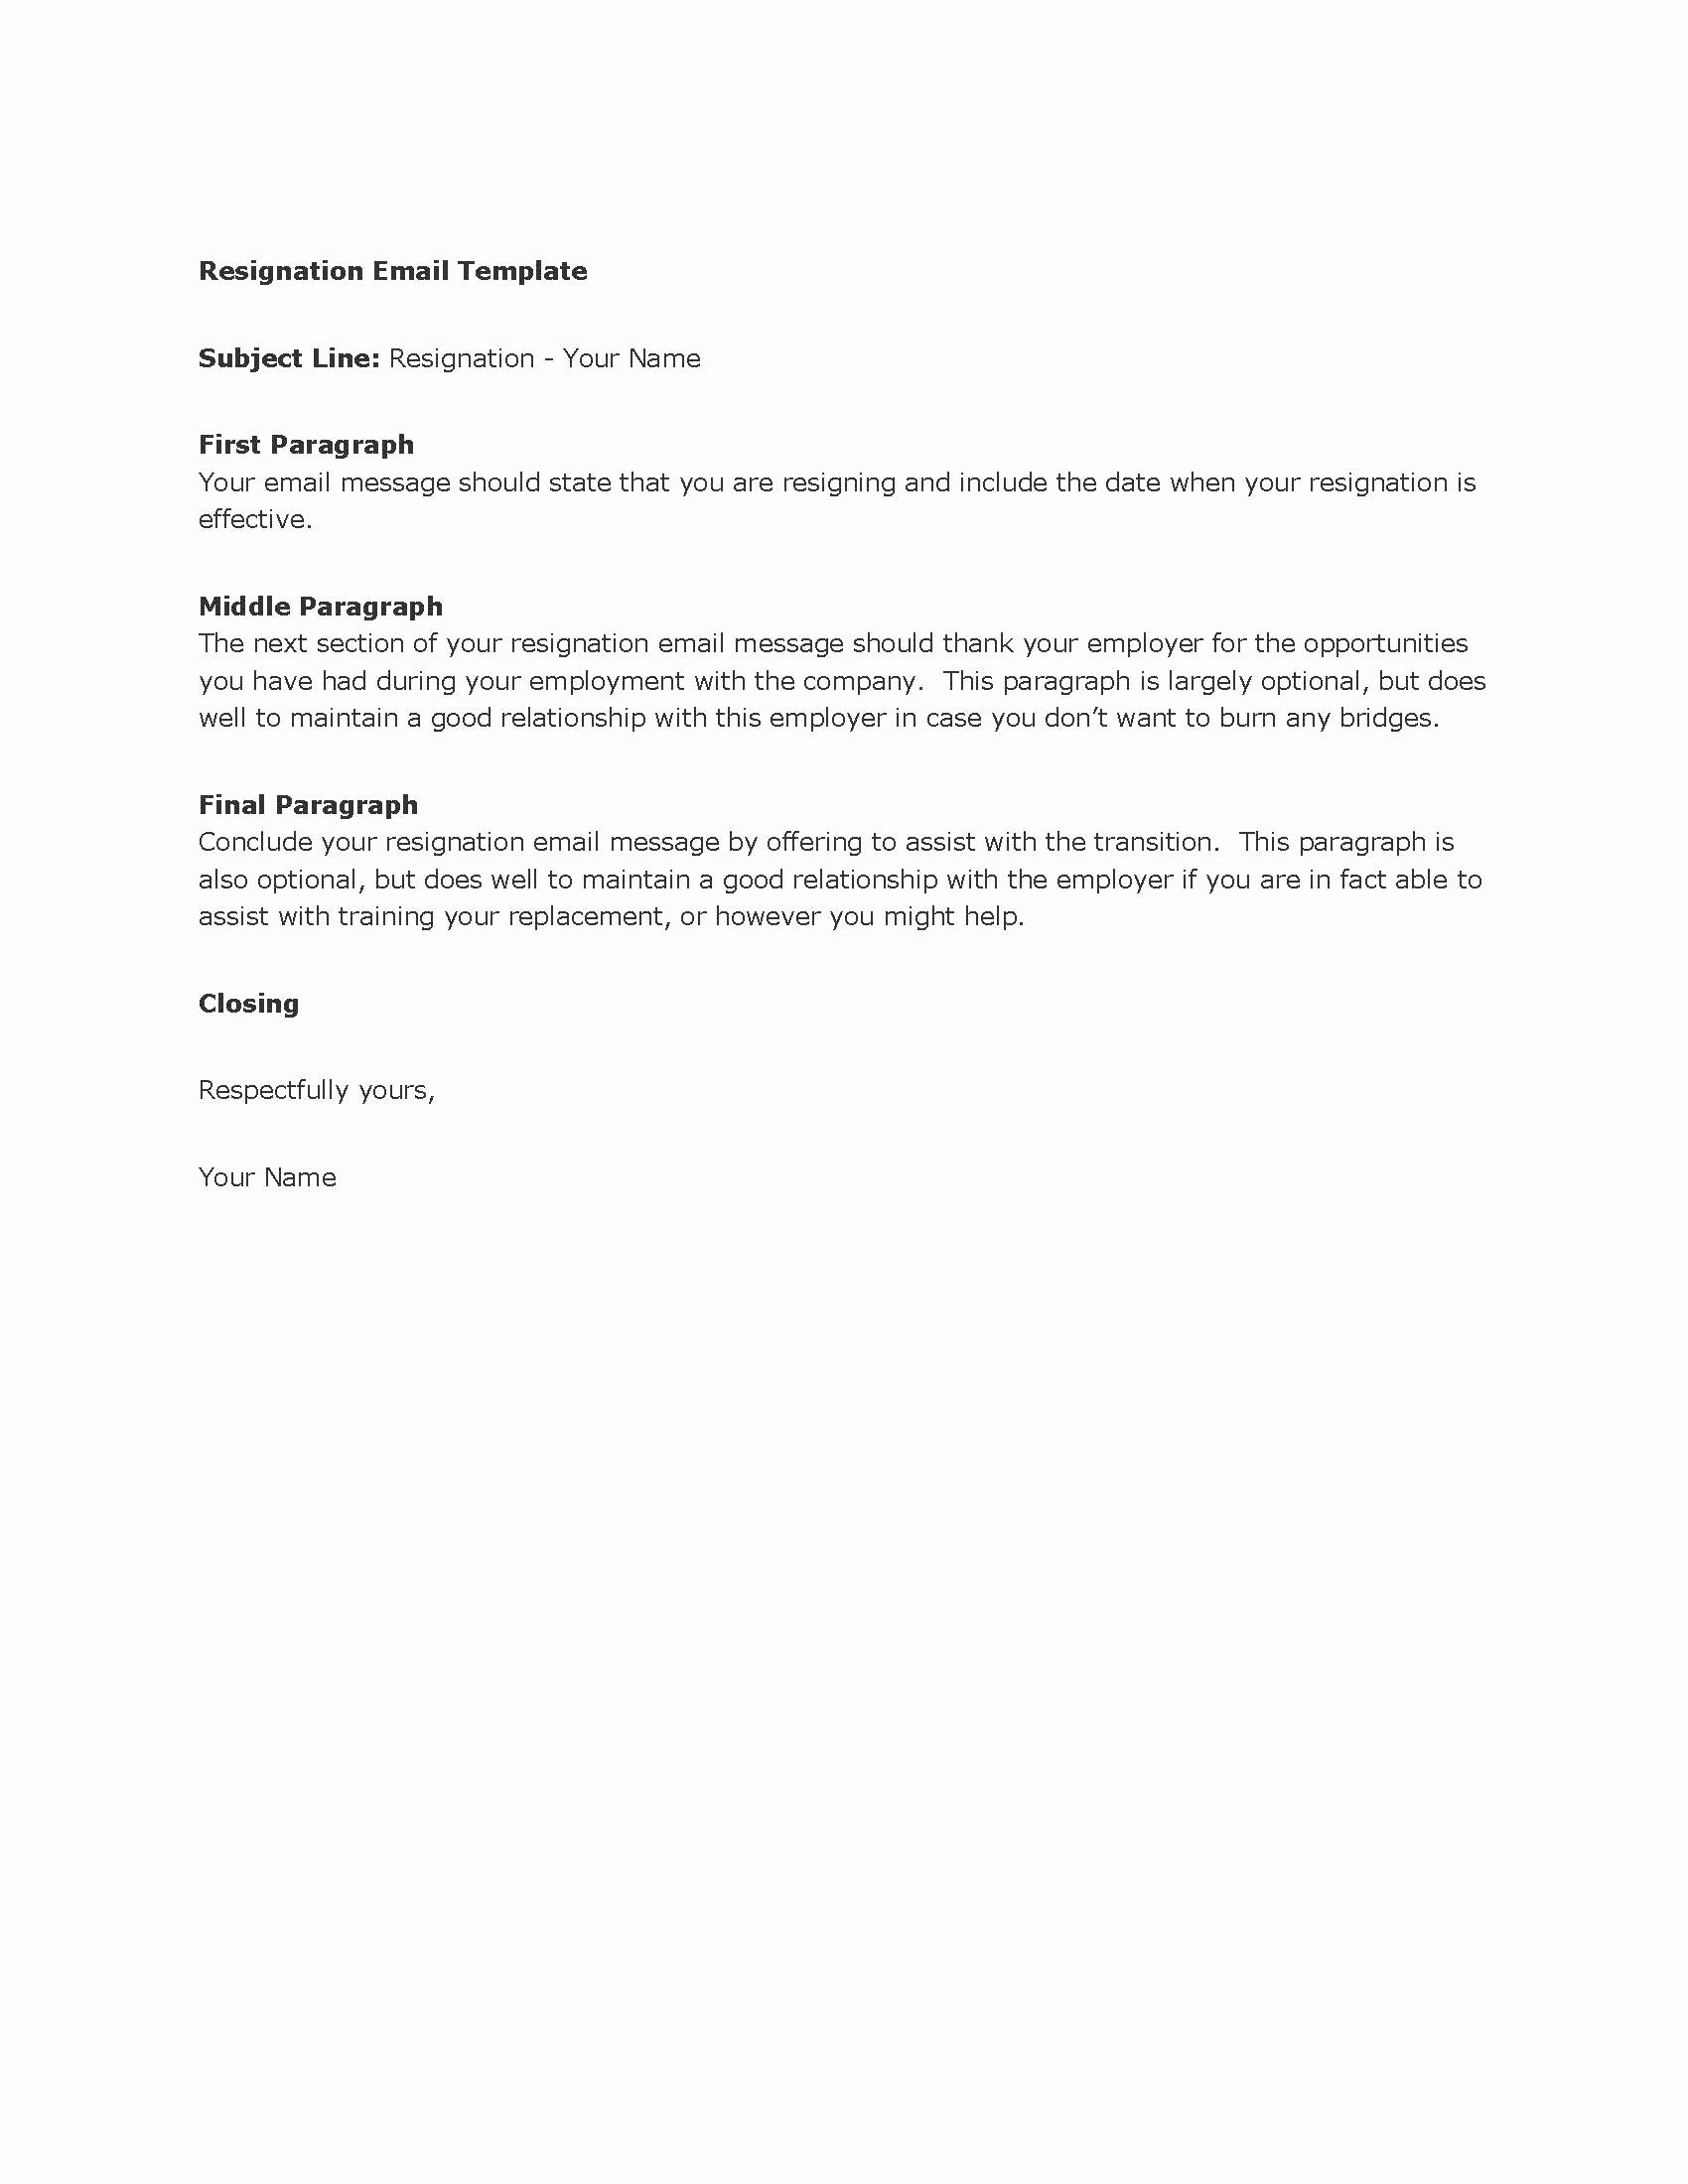 Template for Letter Of Resignation Lovely Resignation Email Template